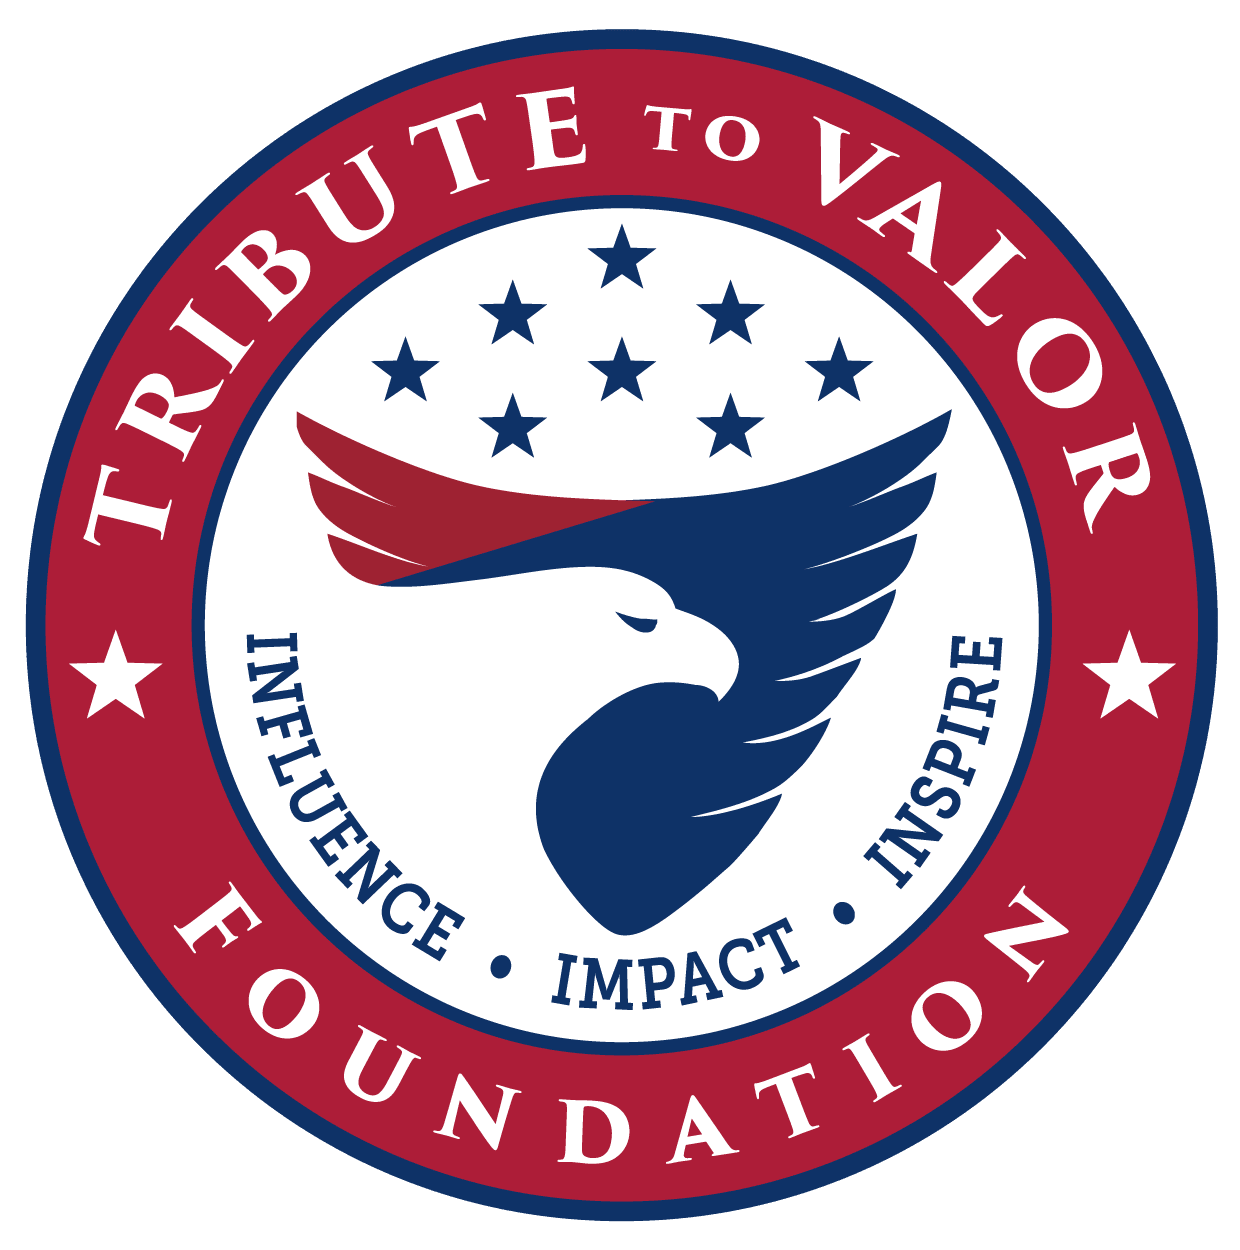 Tribute to Valor Foundation. Influence. Impact. Inspire. Who Am I? Courage. Sacrifice. Commitment. Integrity. Patriotism. Citizenship. #tributetovalor